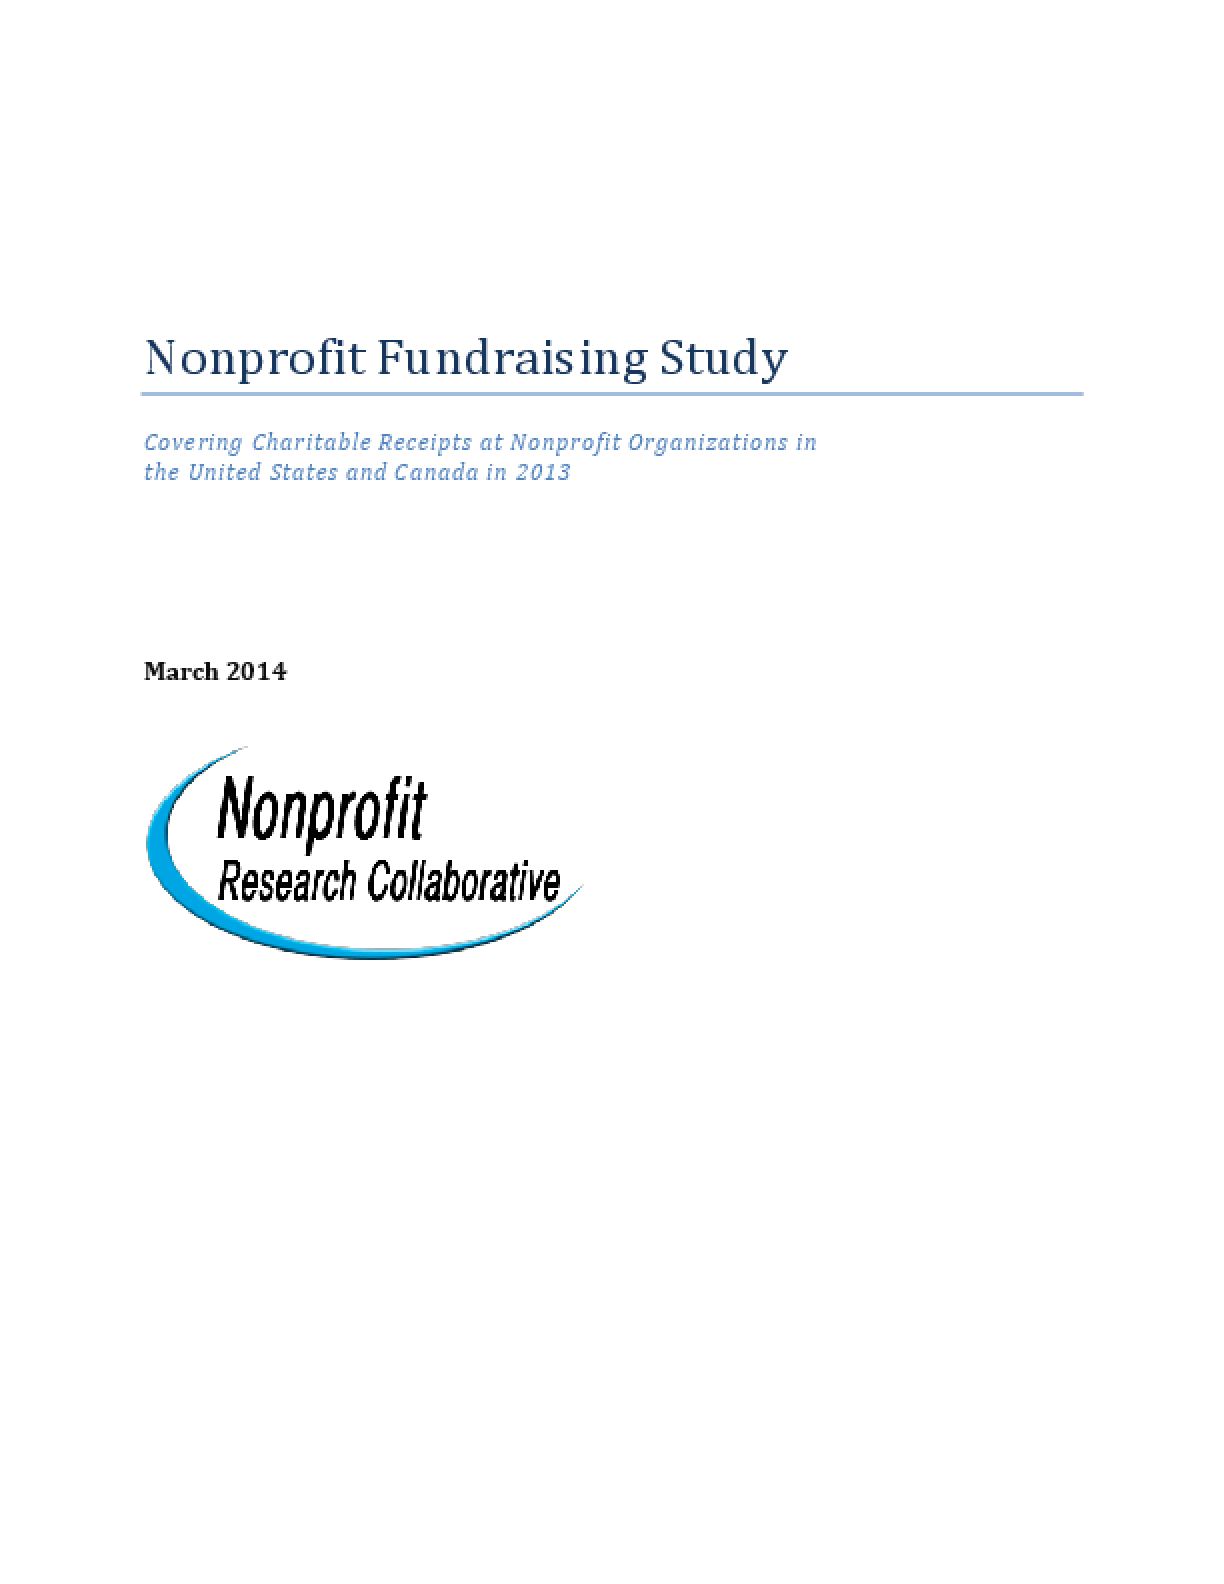 Nonprofit Fundraising Study: Covering Charitable Receipts At Nonprofit Organizations in the United States and Canada in 2013